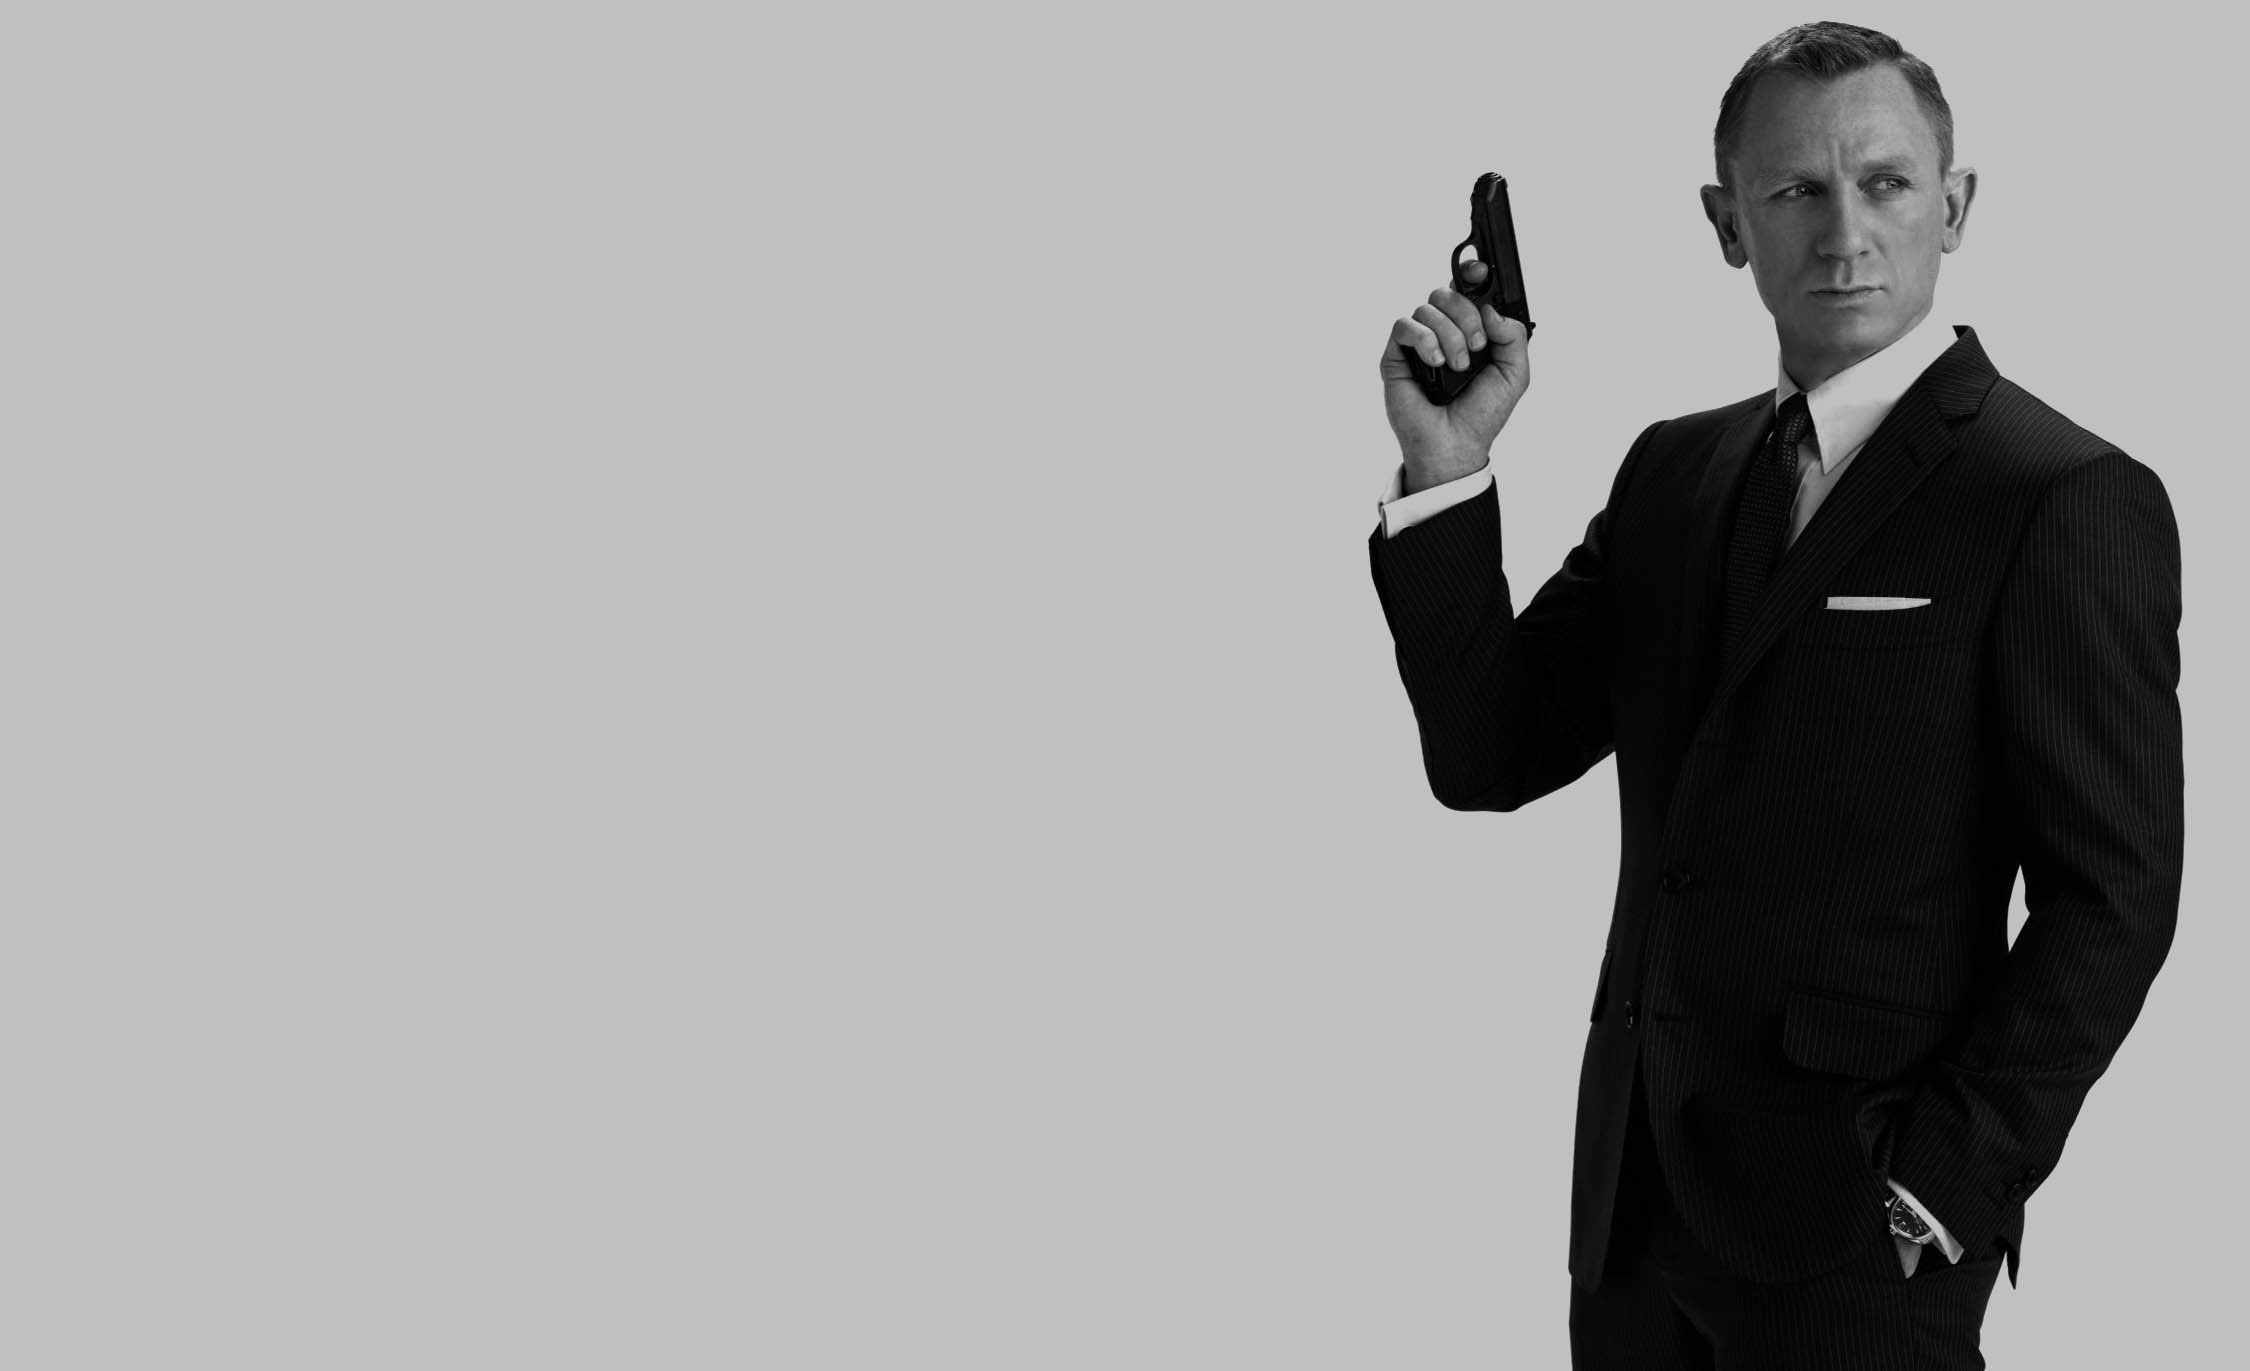 Apple y Amazon estarían compitiendo por comprar la franquicia de James Bond